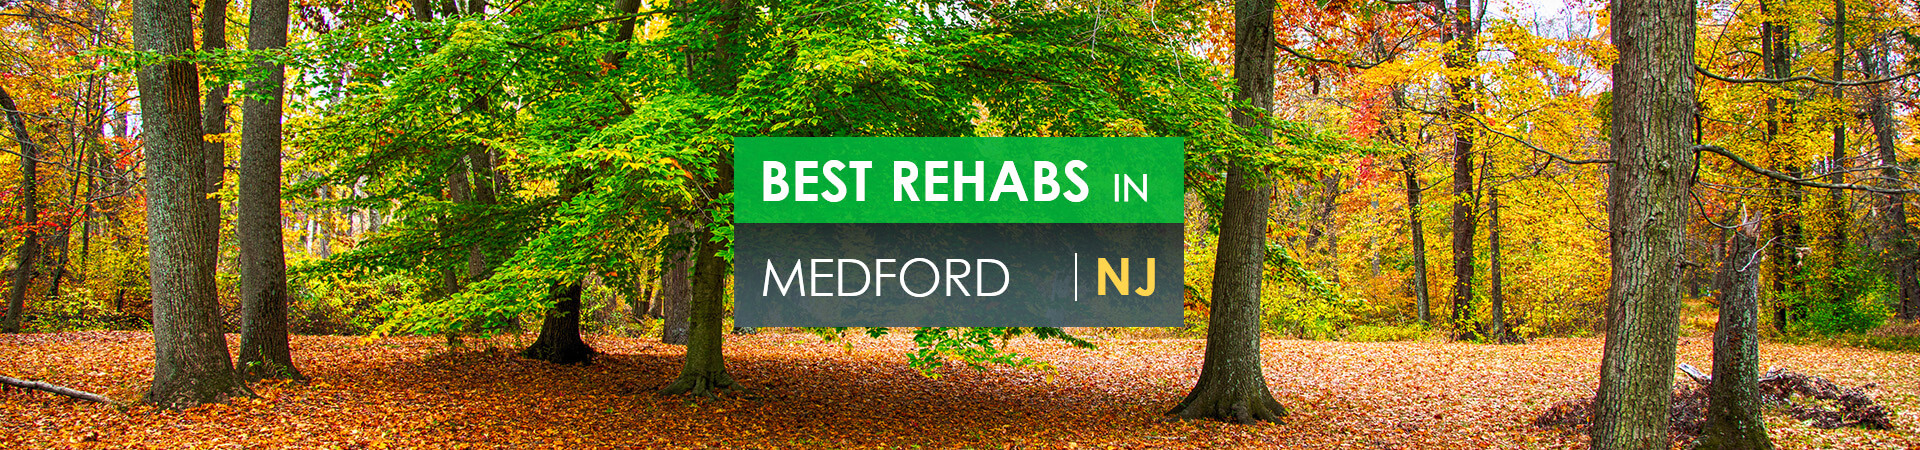 Best rehabs in Medford, NJ